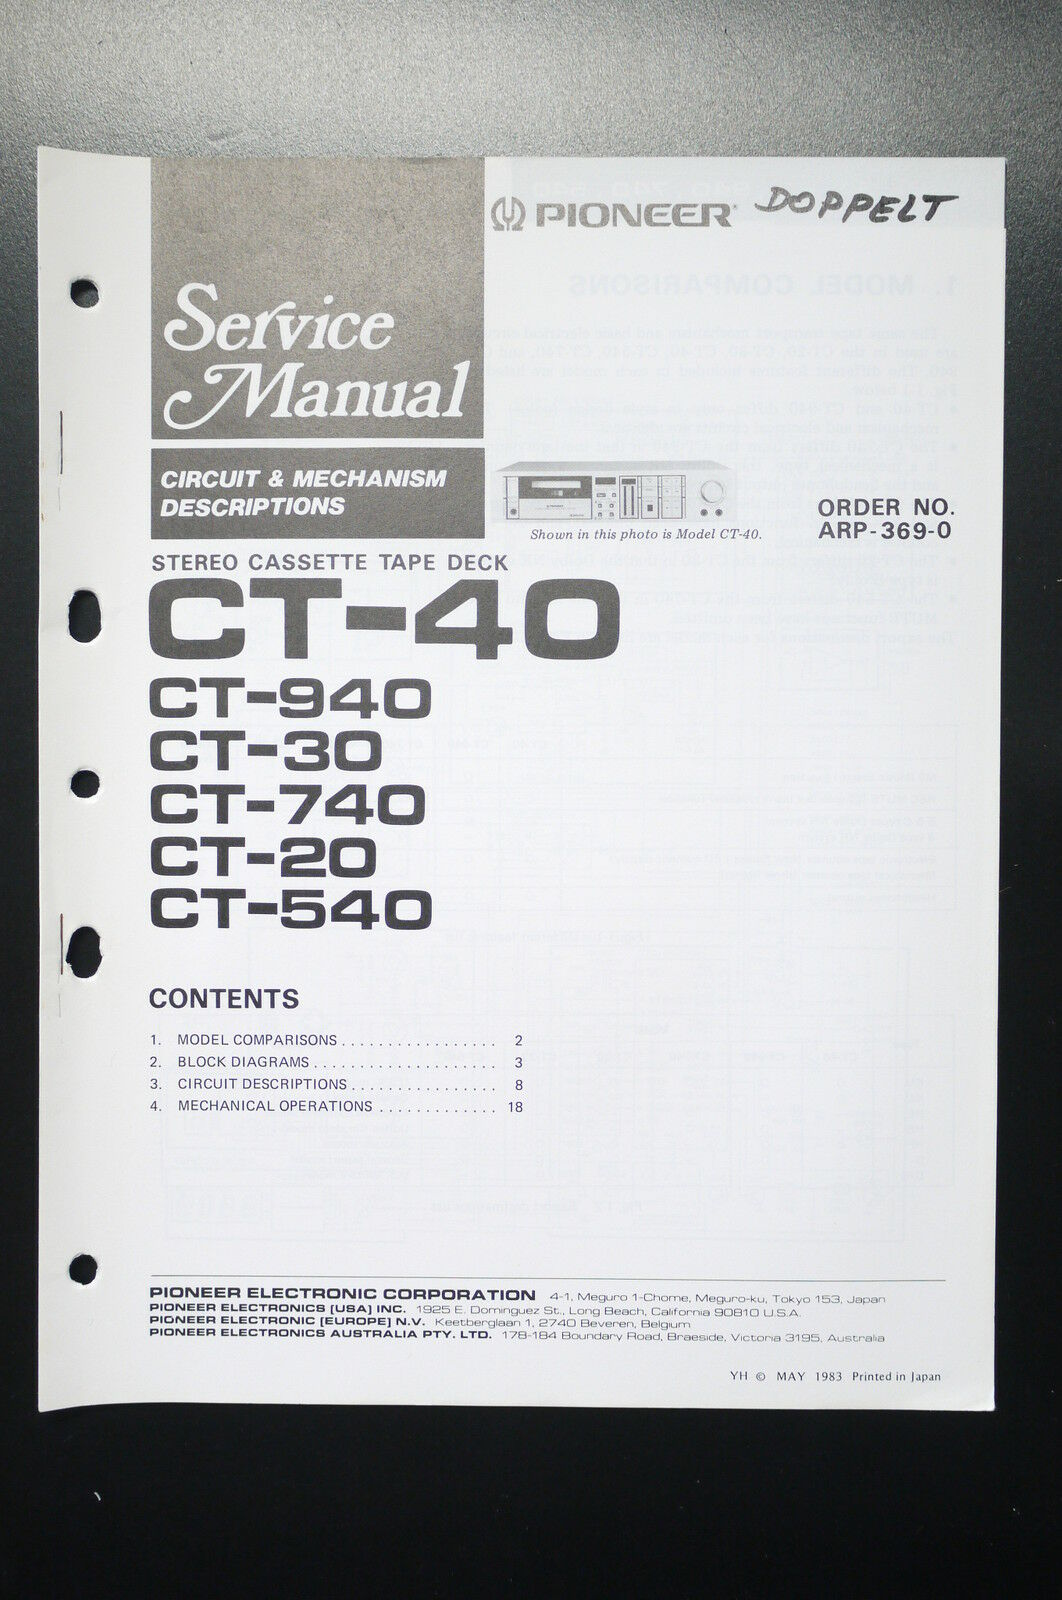 Pioneer Ct 40 940 30 740 20 540 Service Manual Guide Wiring Diagram 1 Of See More